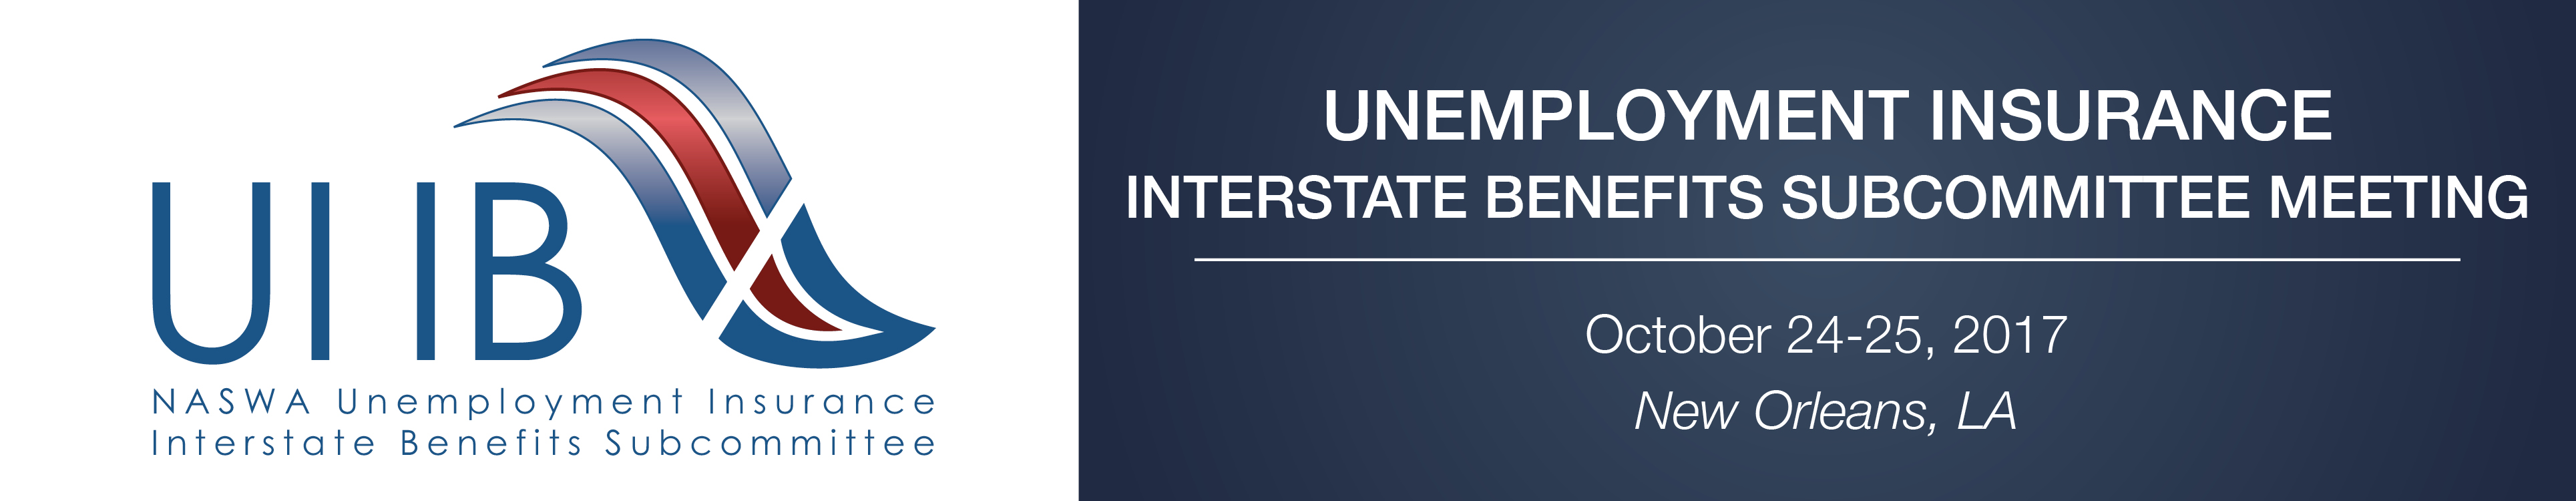 Unemployment Insurance Interstate Benefits Subcommittee Meeting (Oct. 2017)